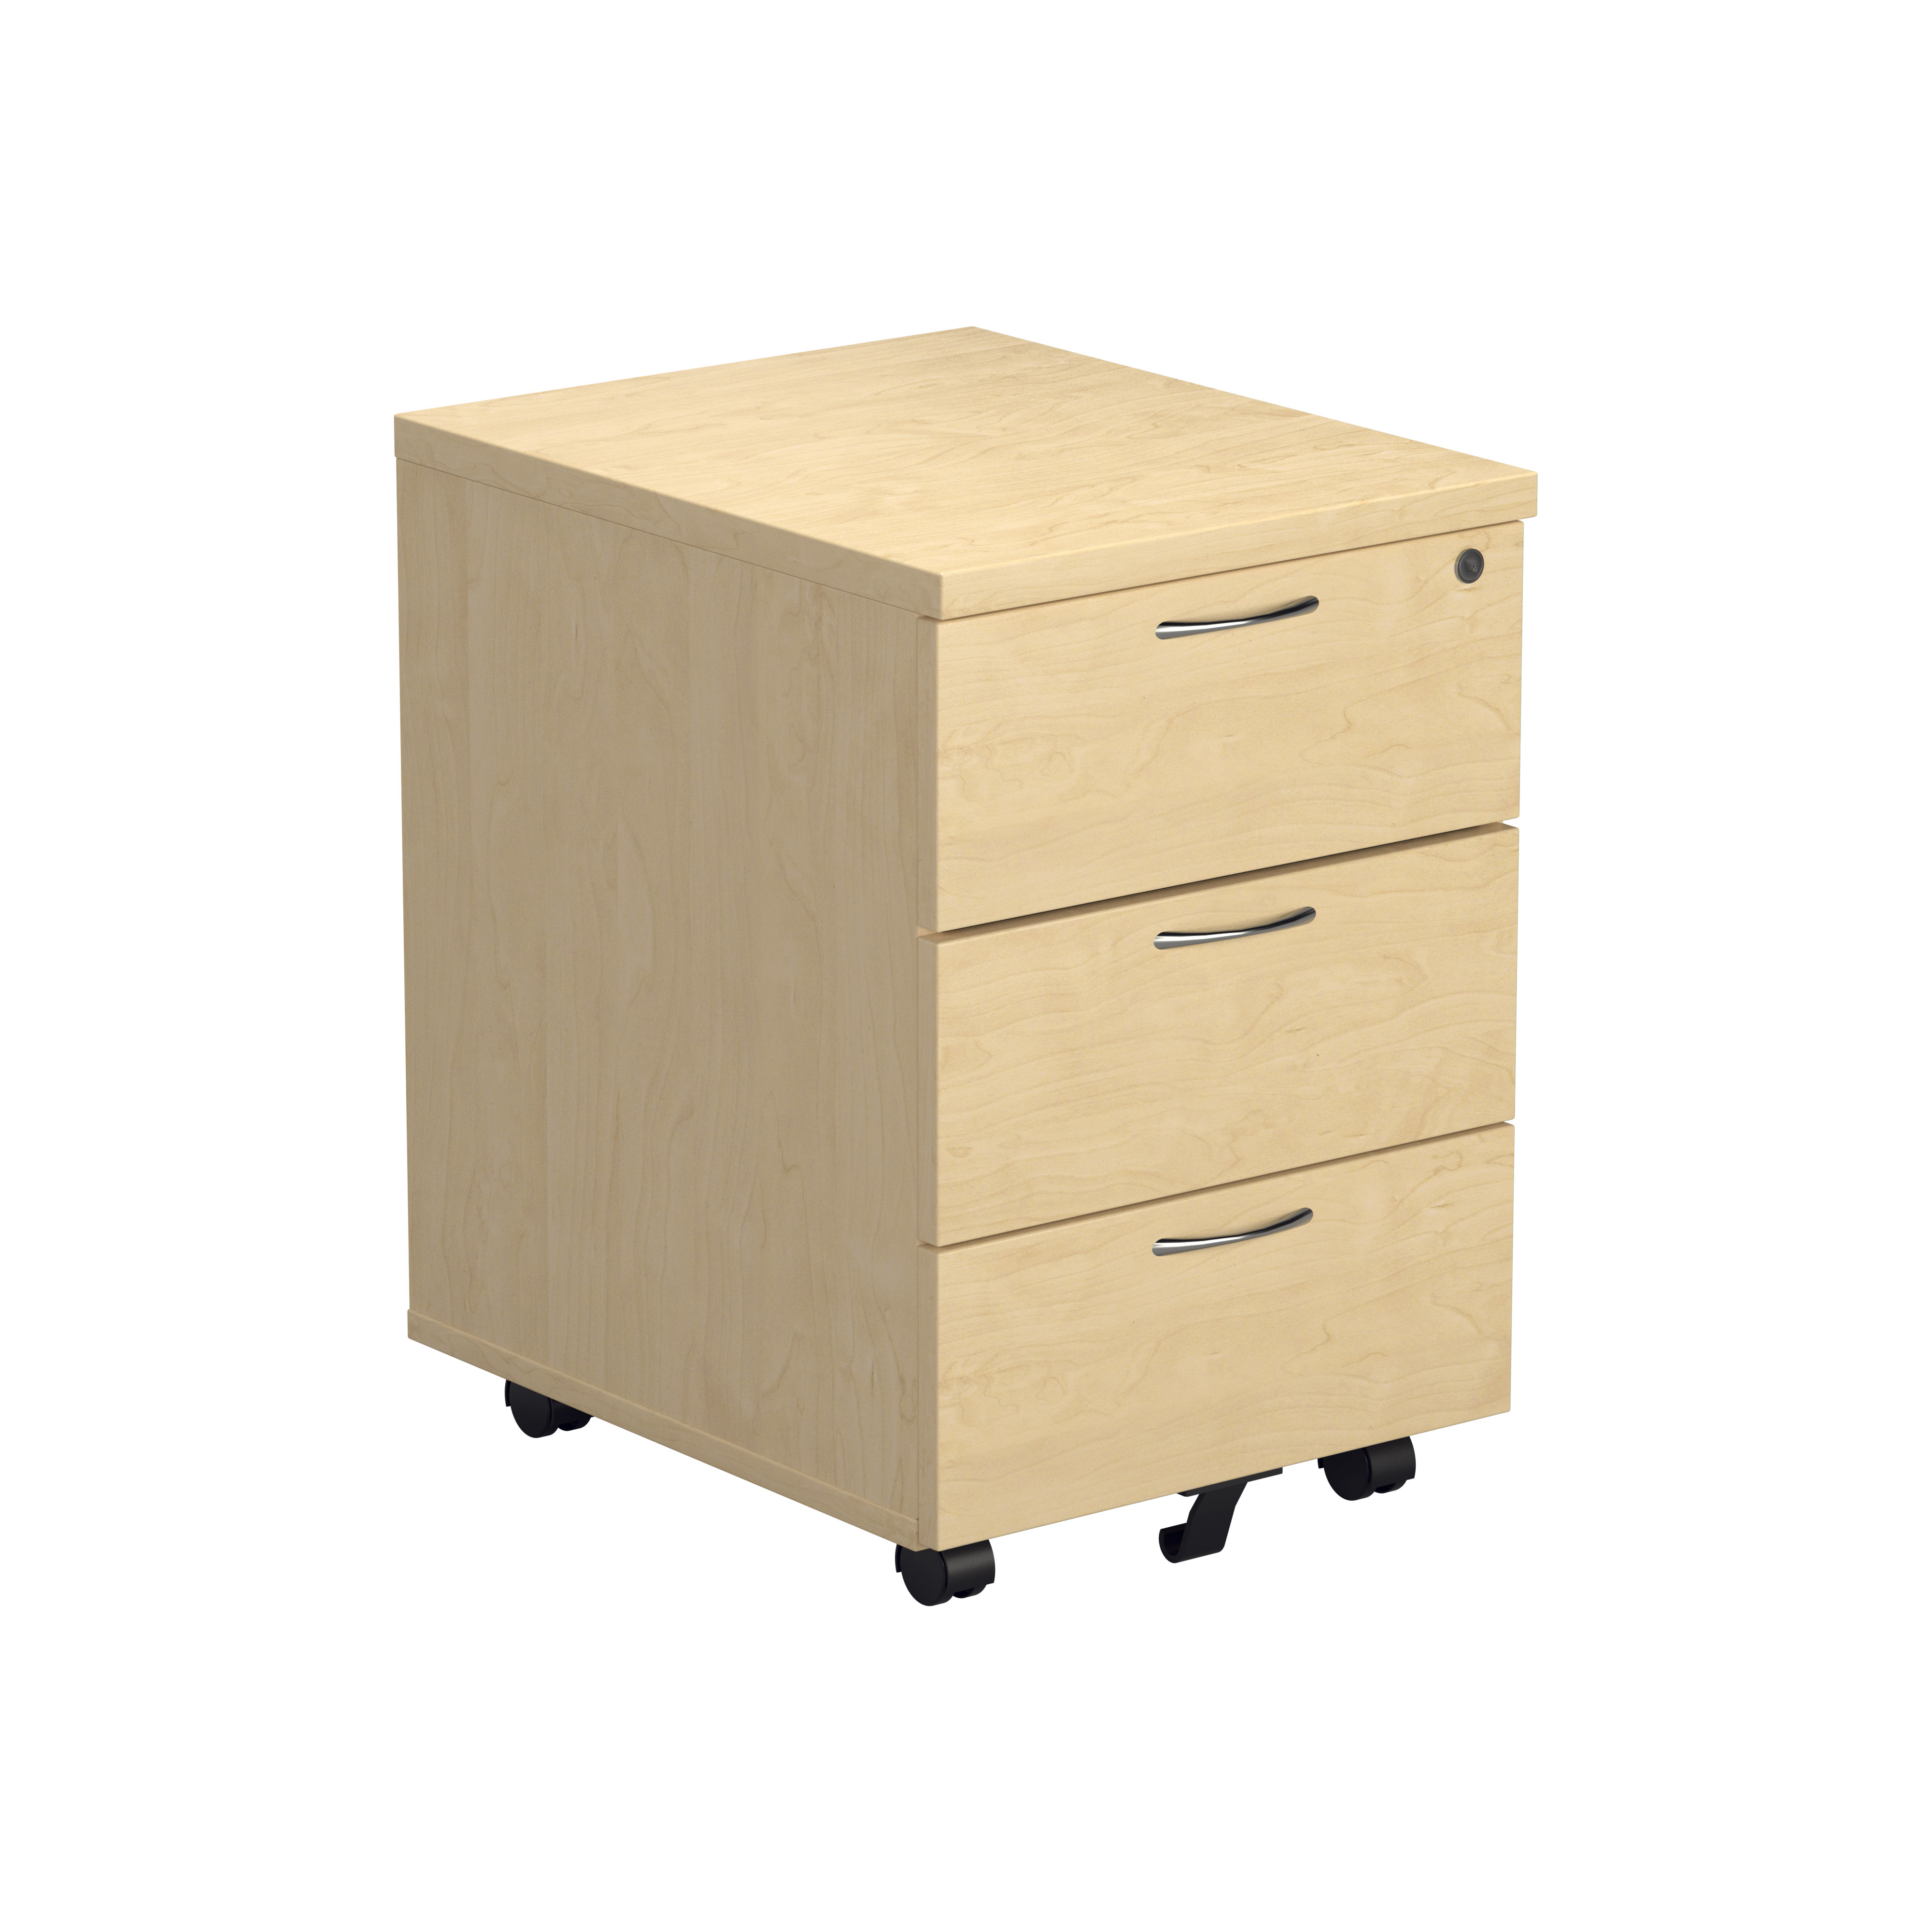 3 Drawer Mobile Pedestal - Maple